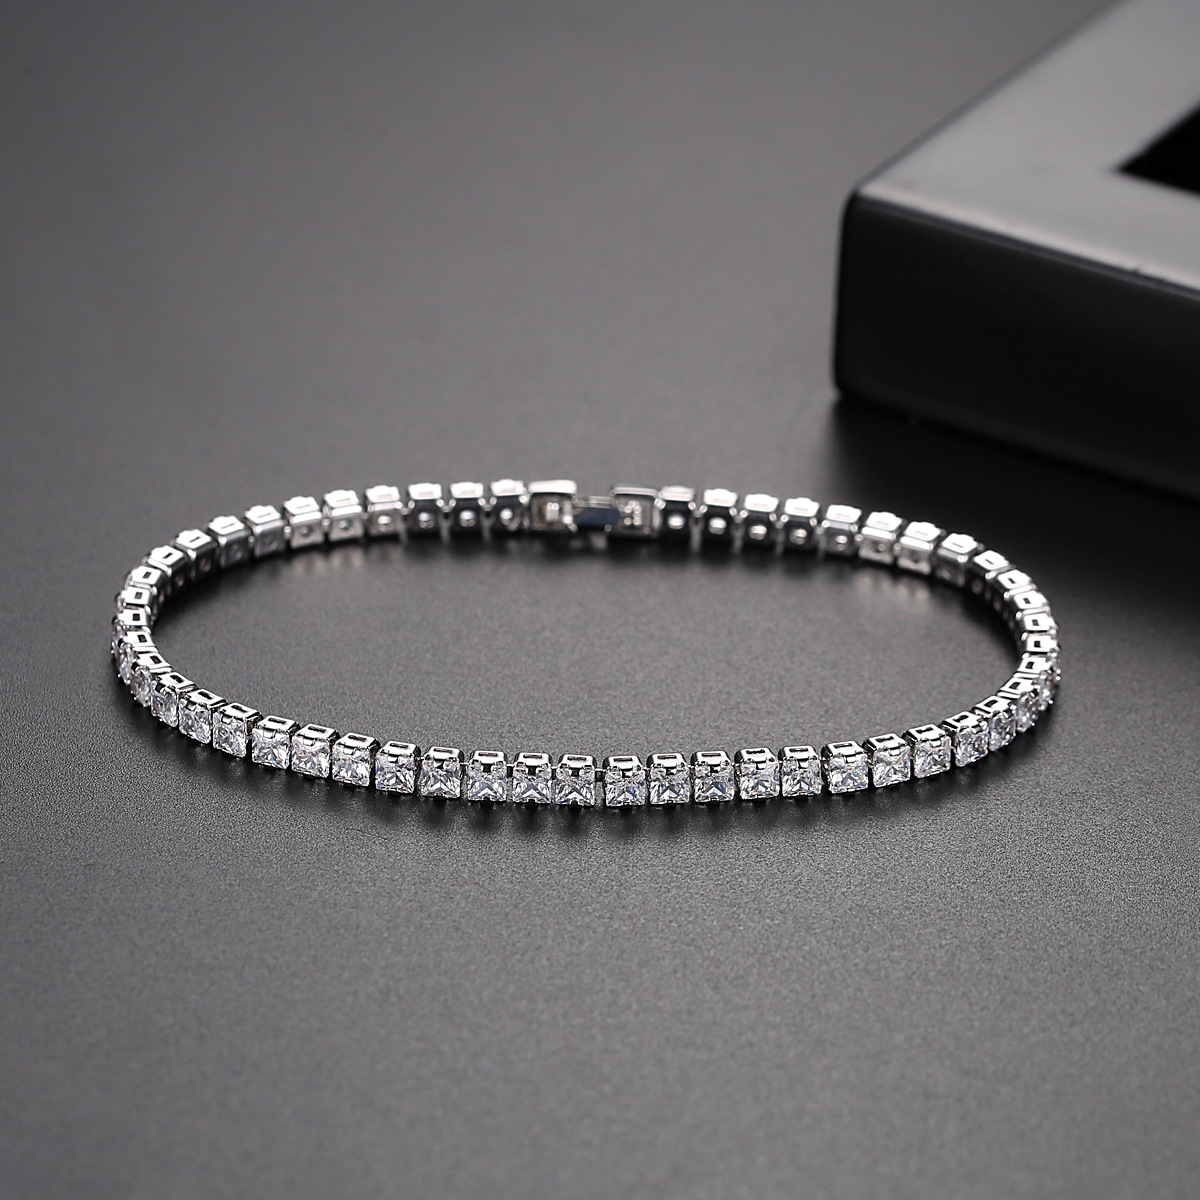 925 Sterling Silver 3mm 5MM 17cm 19CM CZ Tennis Bracelet Bangle For Women Wedding Fashion Jewelry Wholesale Party Gift S5650